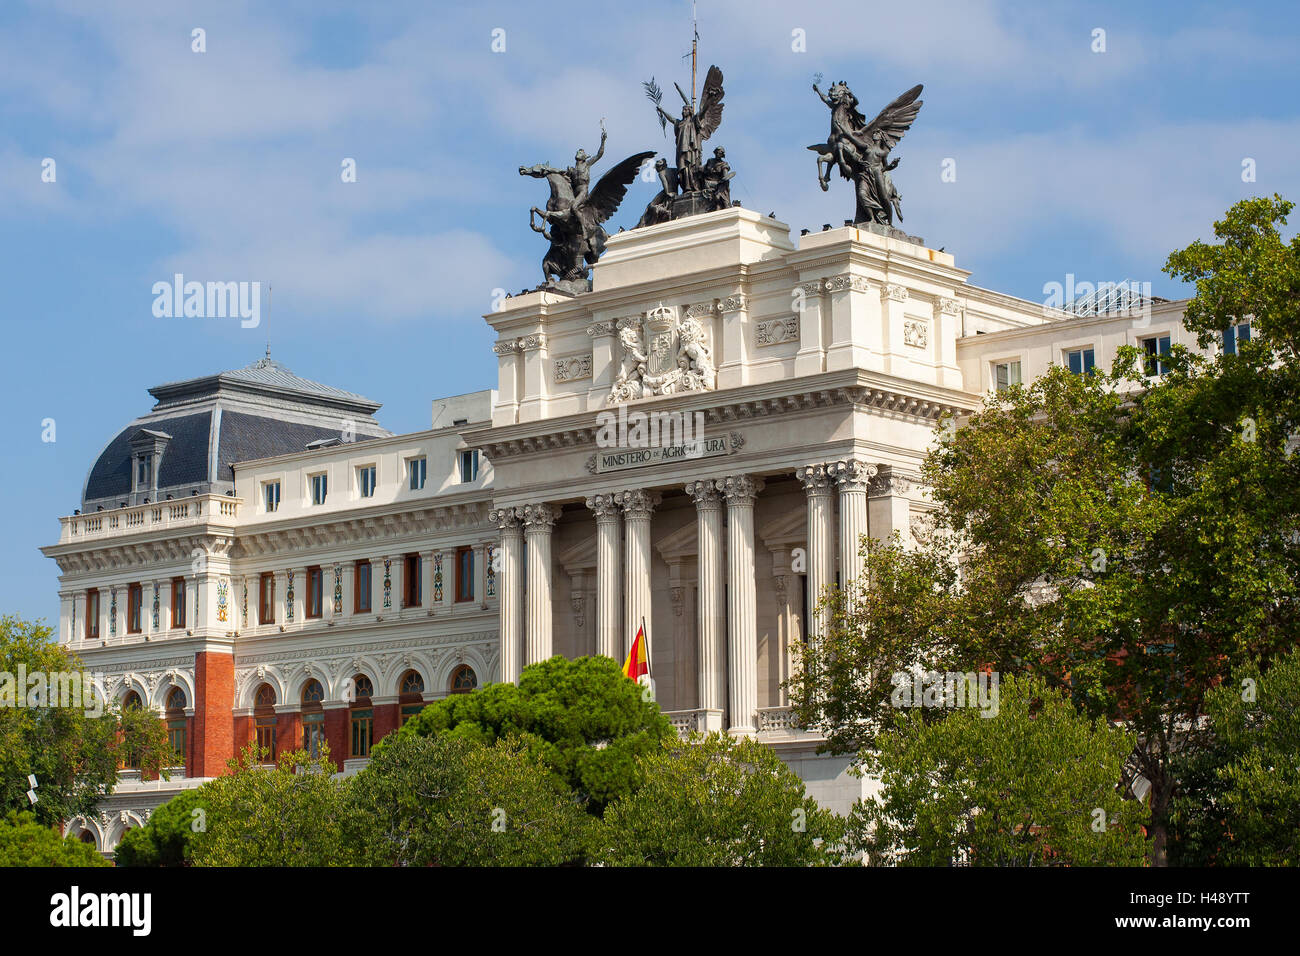 Beautiful government palace facade the Ministry of Agriculture building (Ministerio de Agricultura). Stock Photo